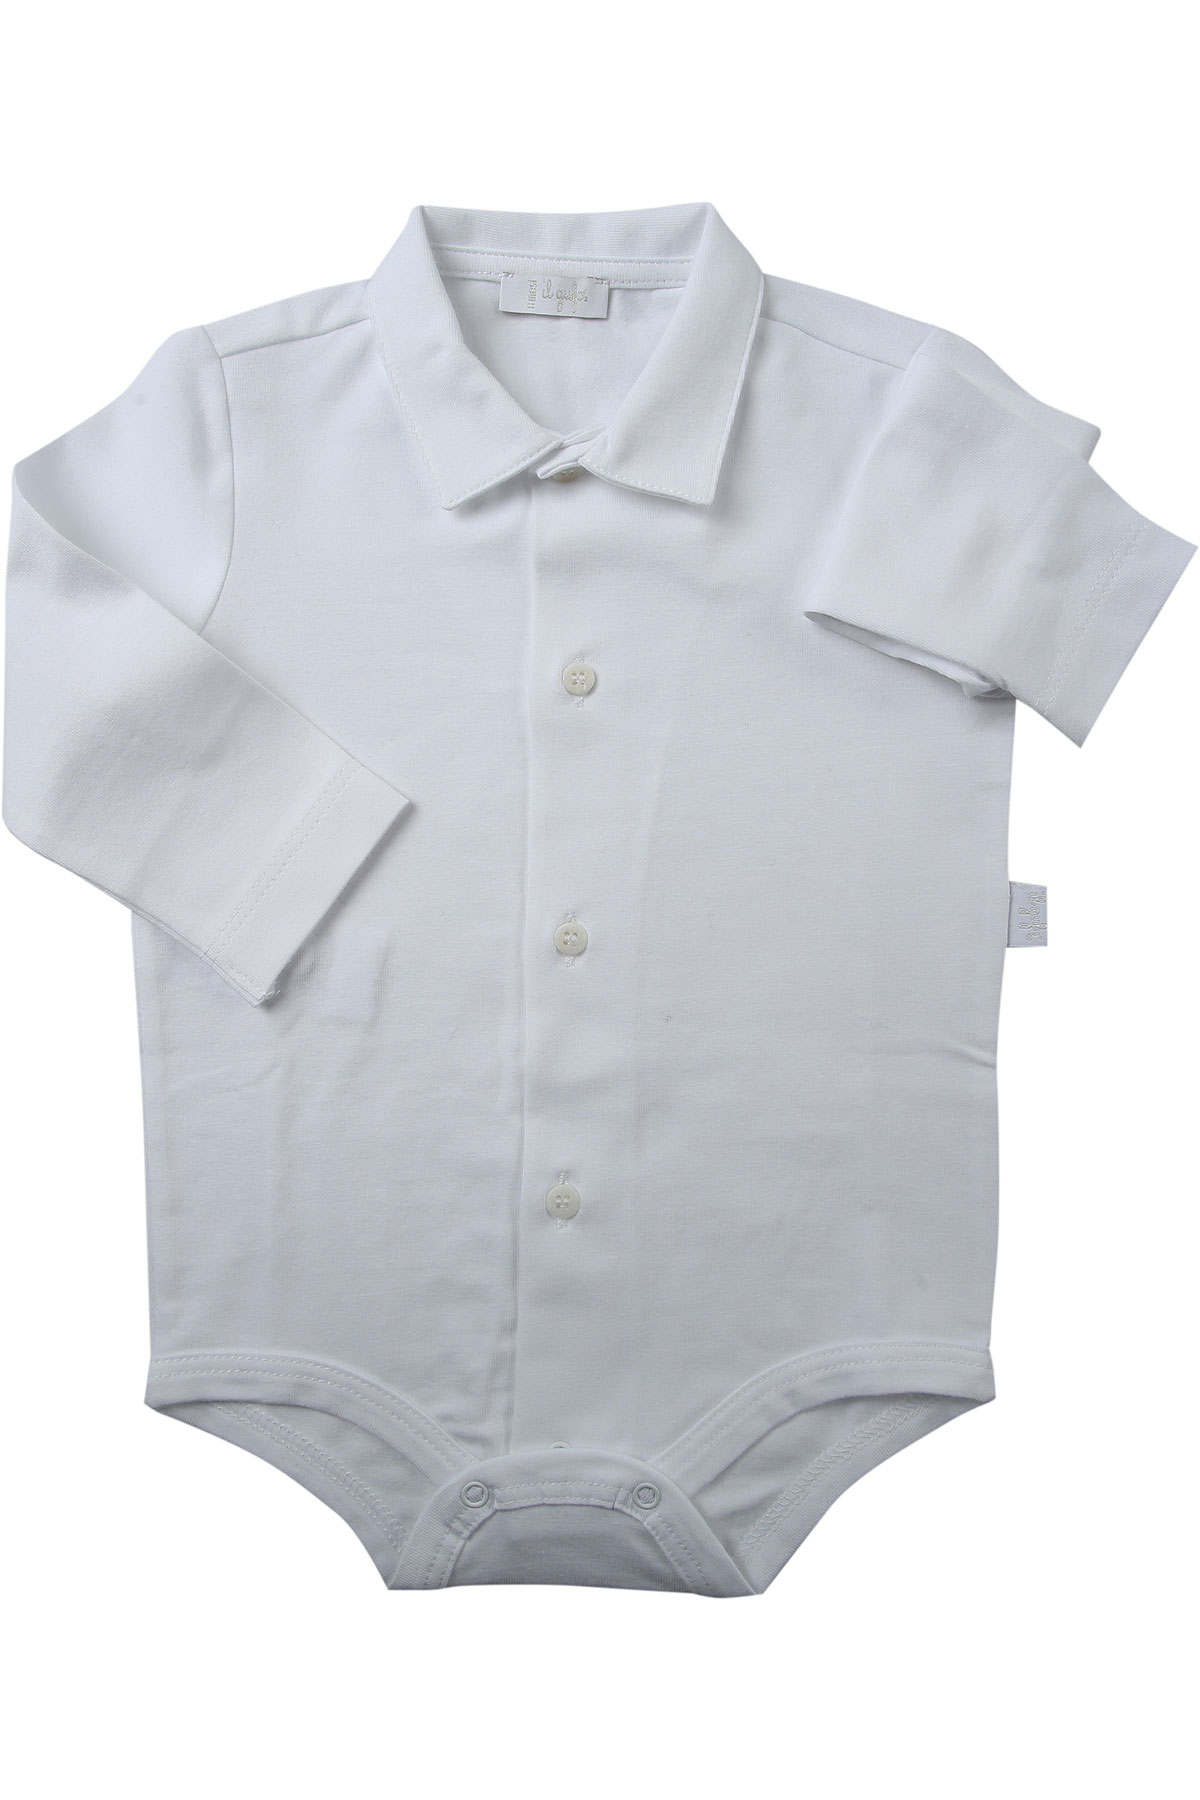 Image of Il Gufo Baby Bodysuits & Onesies for Boys, White, Cotton, 2017, 12M 18M 2Y 6M 9M